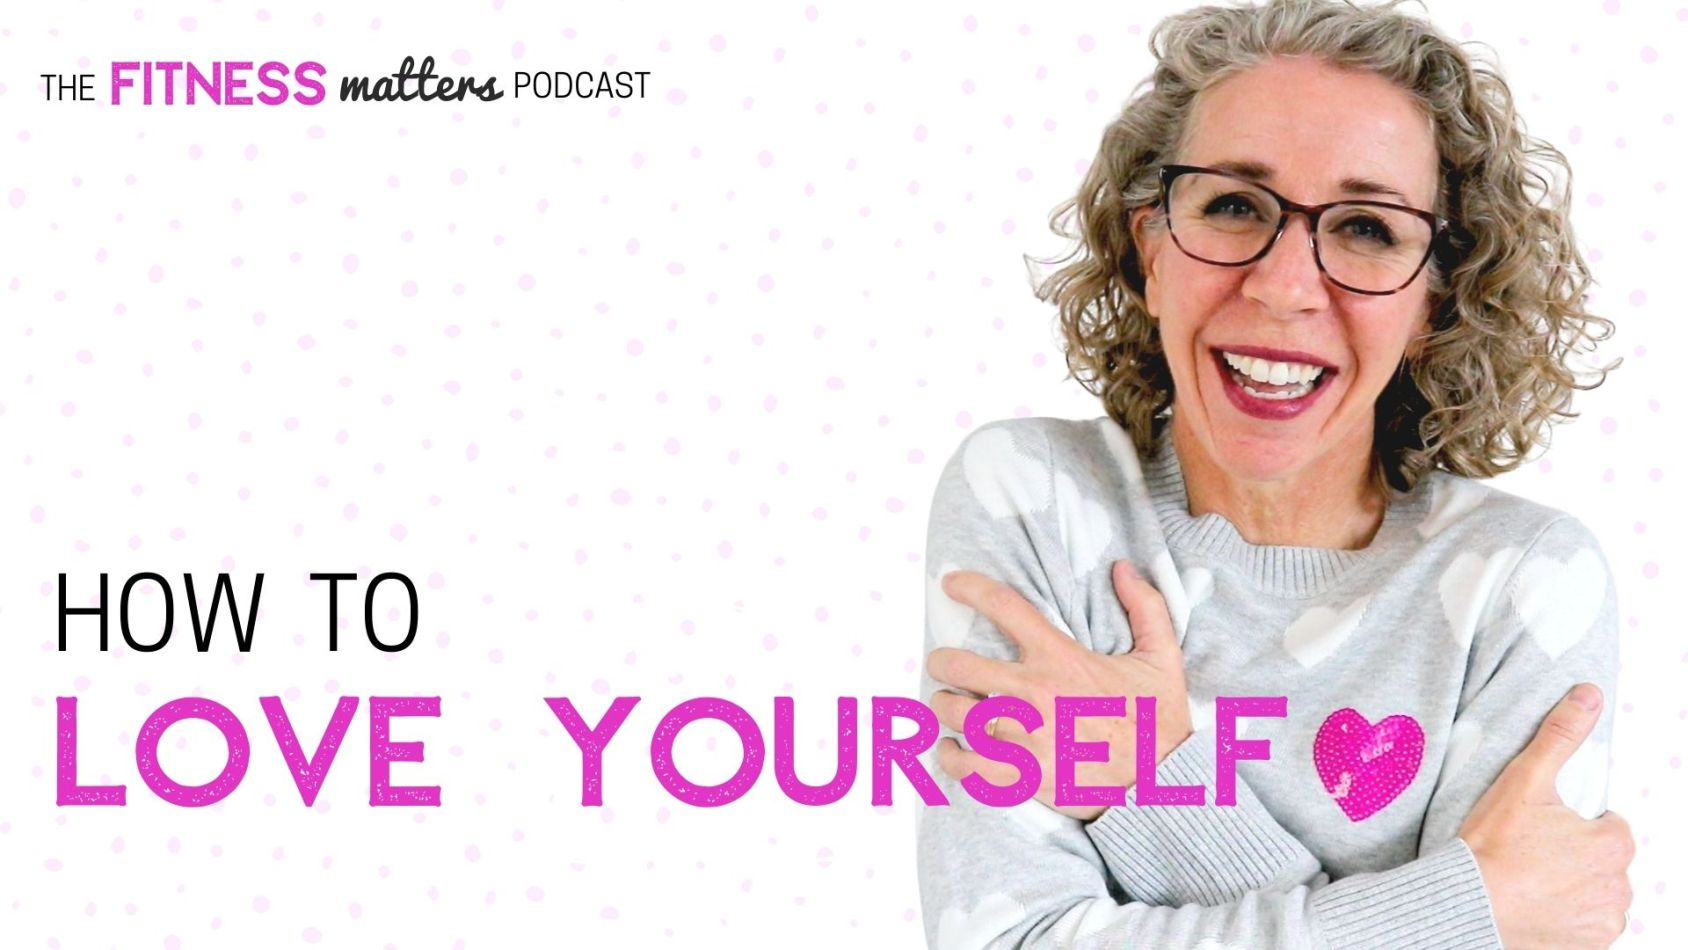 Ep. 063 How to LOVE YOURSELF ???? The Fitness Matters Podcast with Pahla B